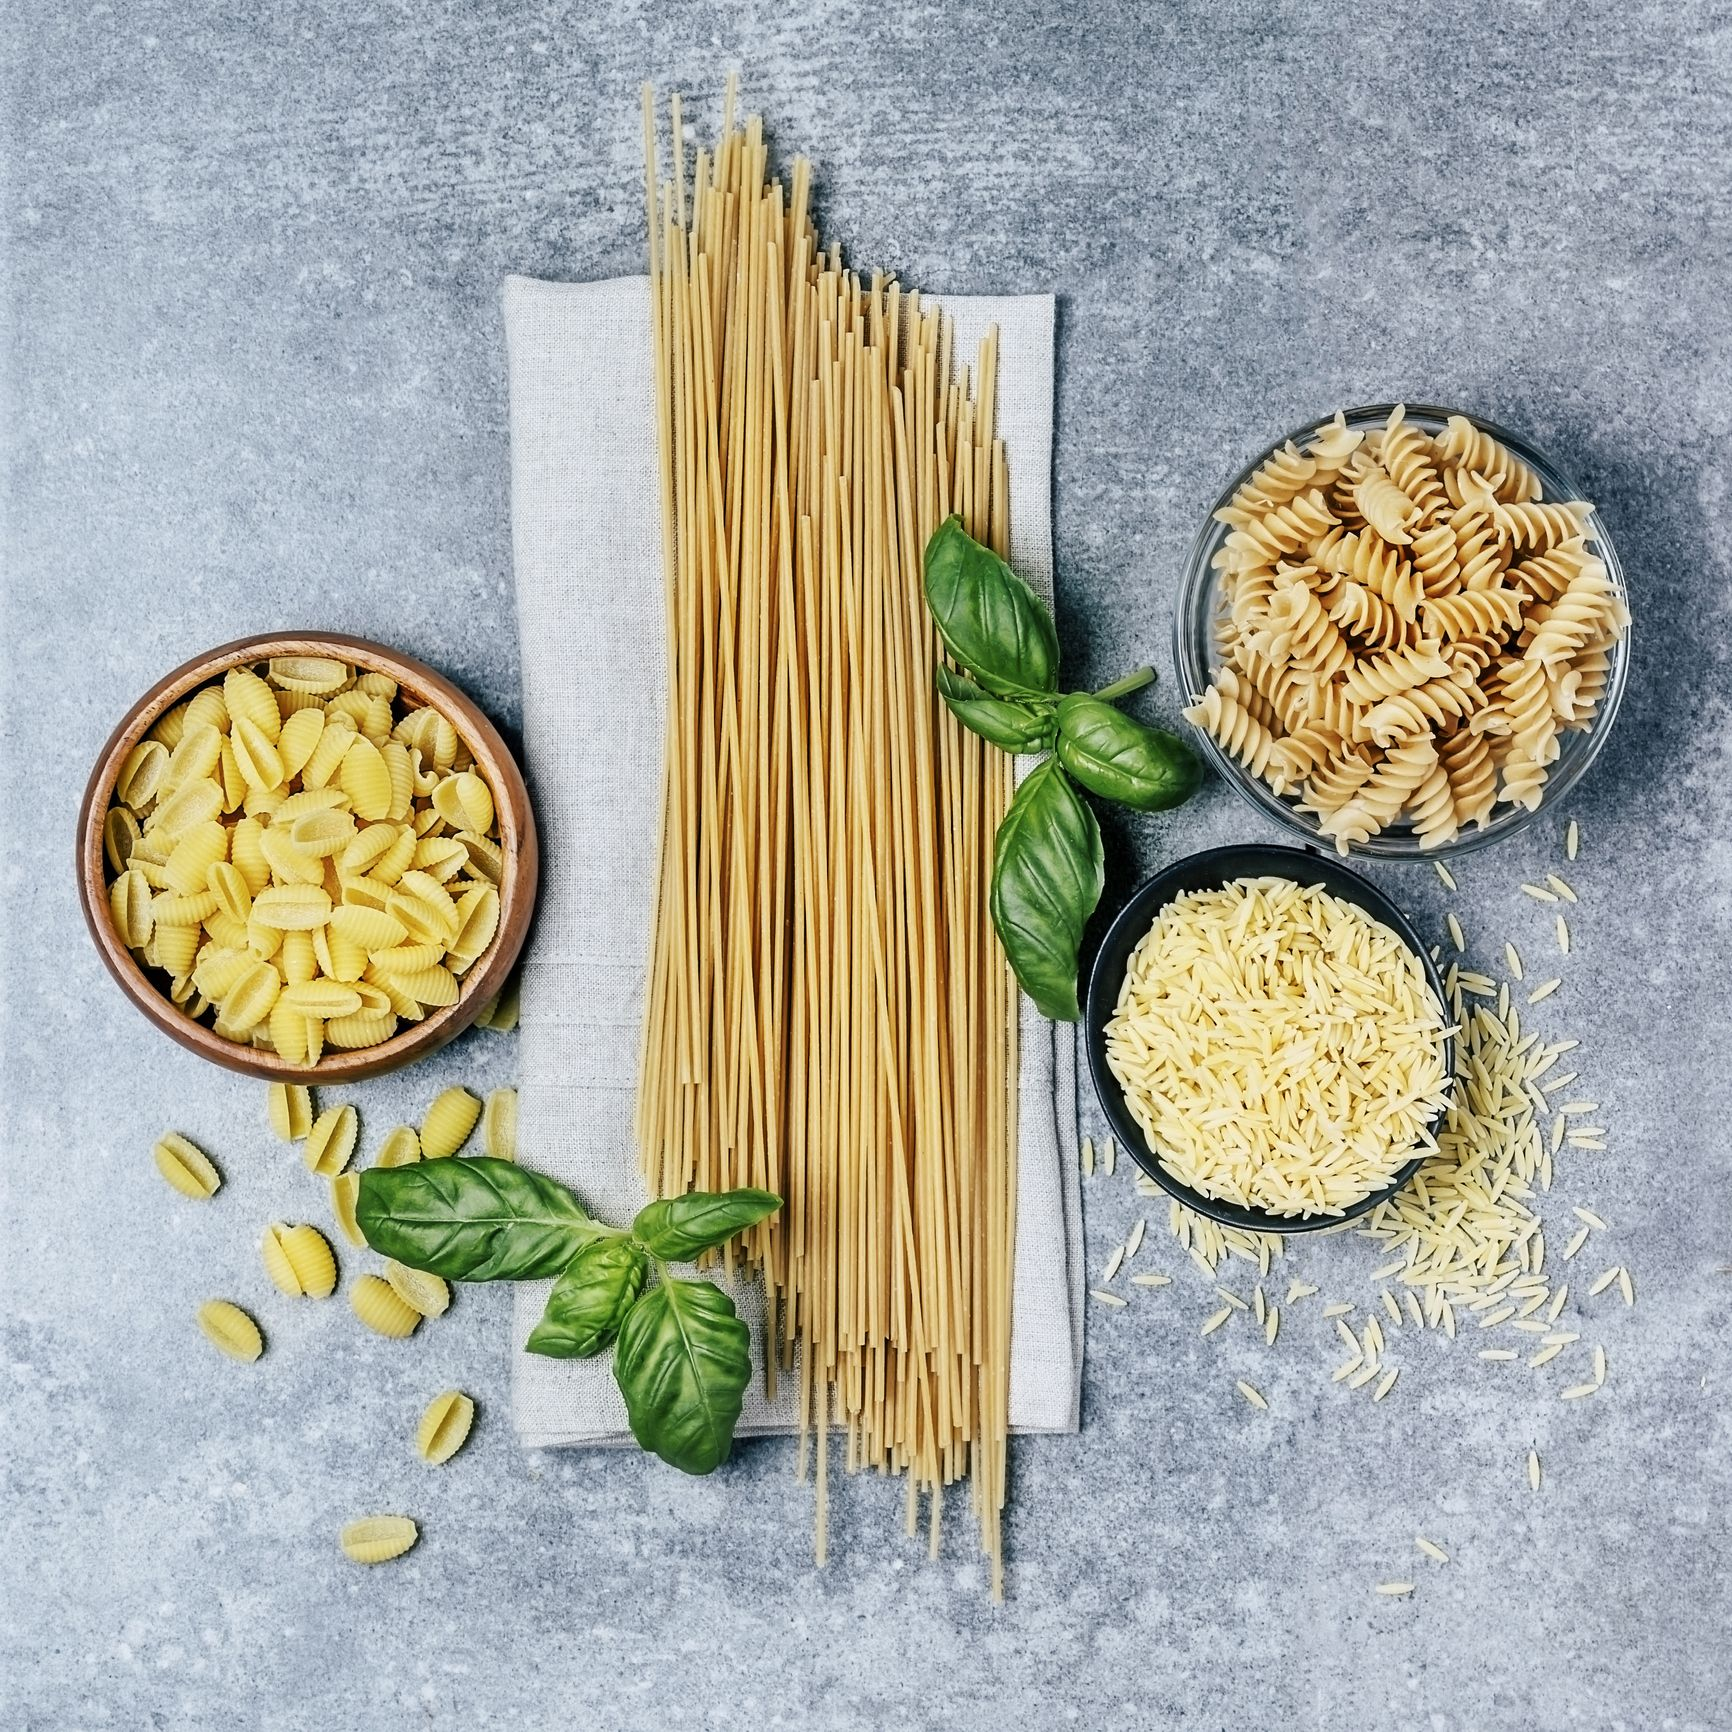 Pasta_gettyimages-848649998